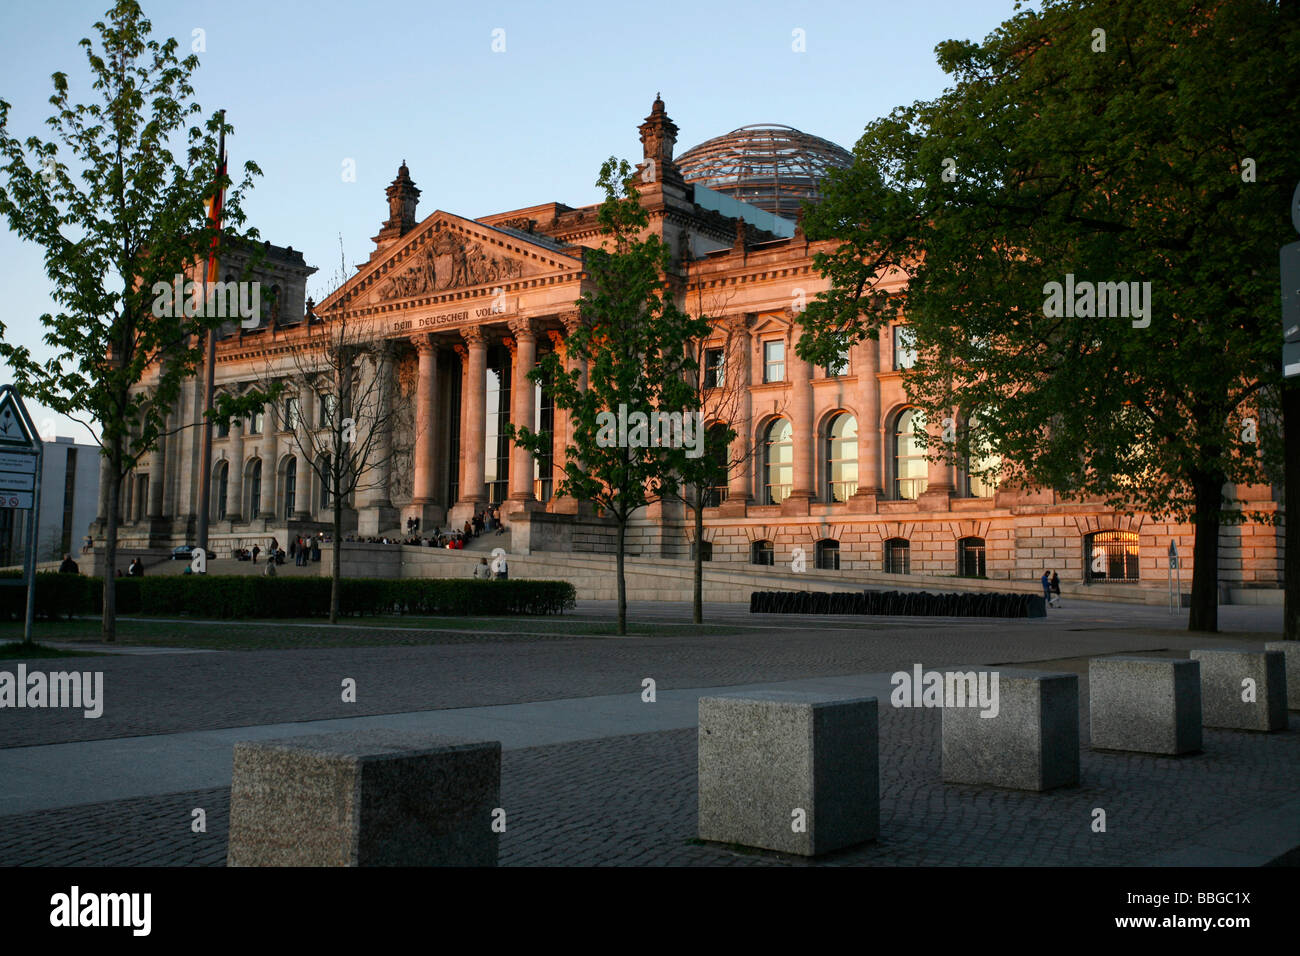 Reichstag parliament building and memorial for the 96 Members of Parliament murdered during the Third Empire, seen - Stock Image